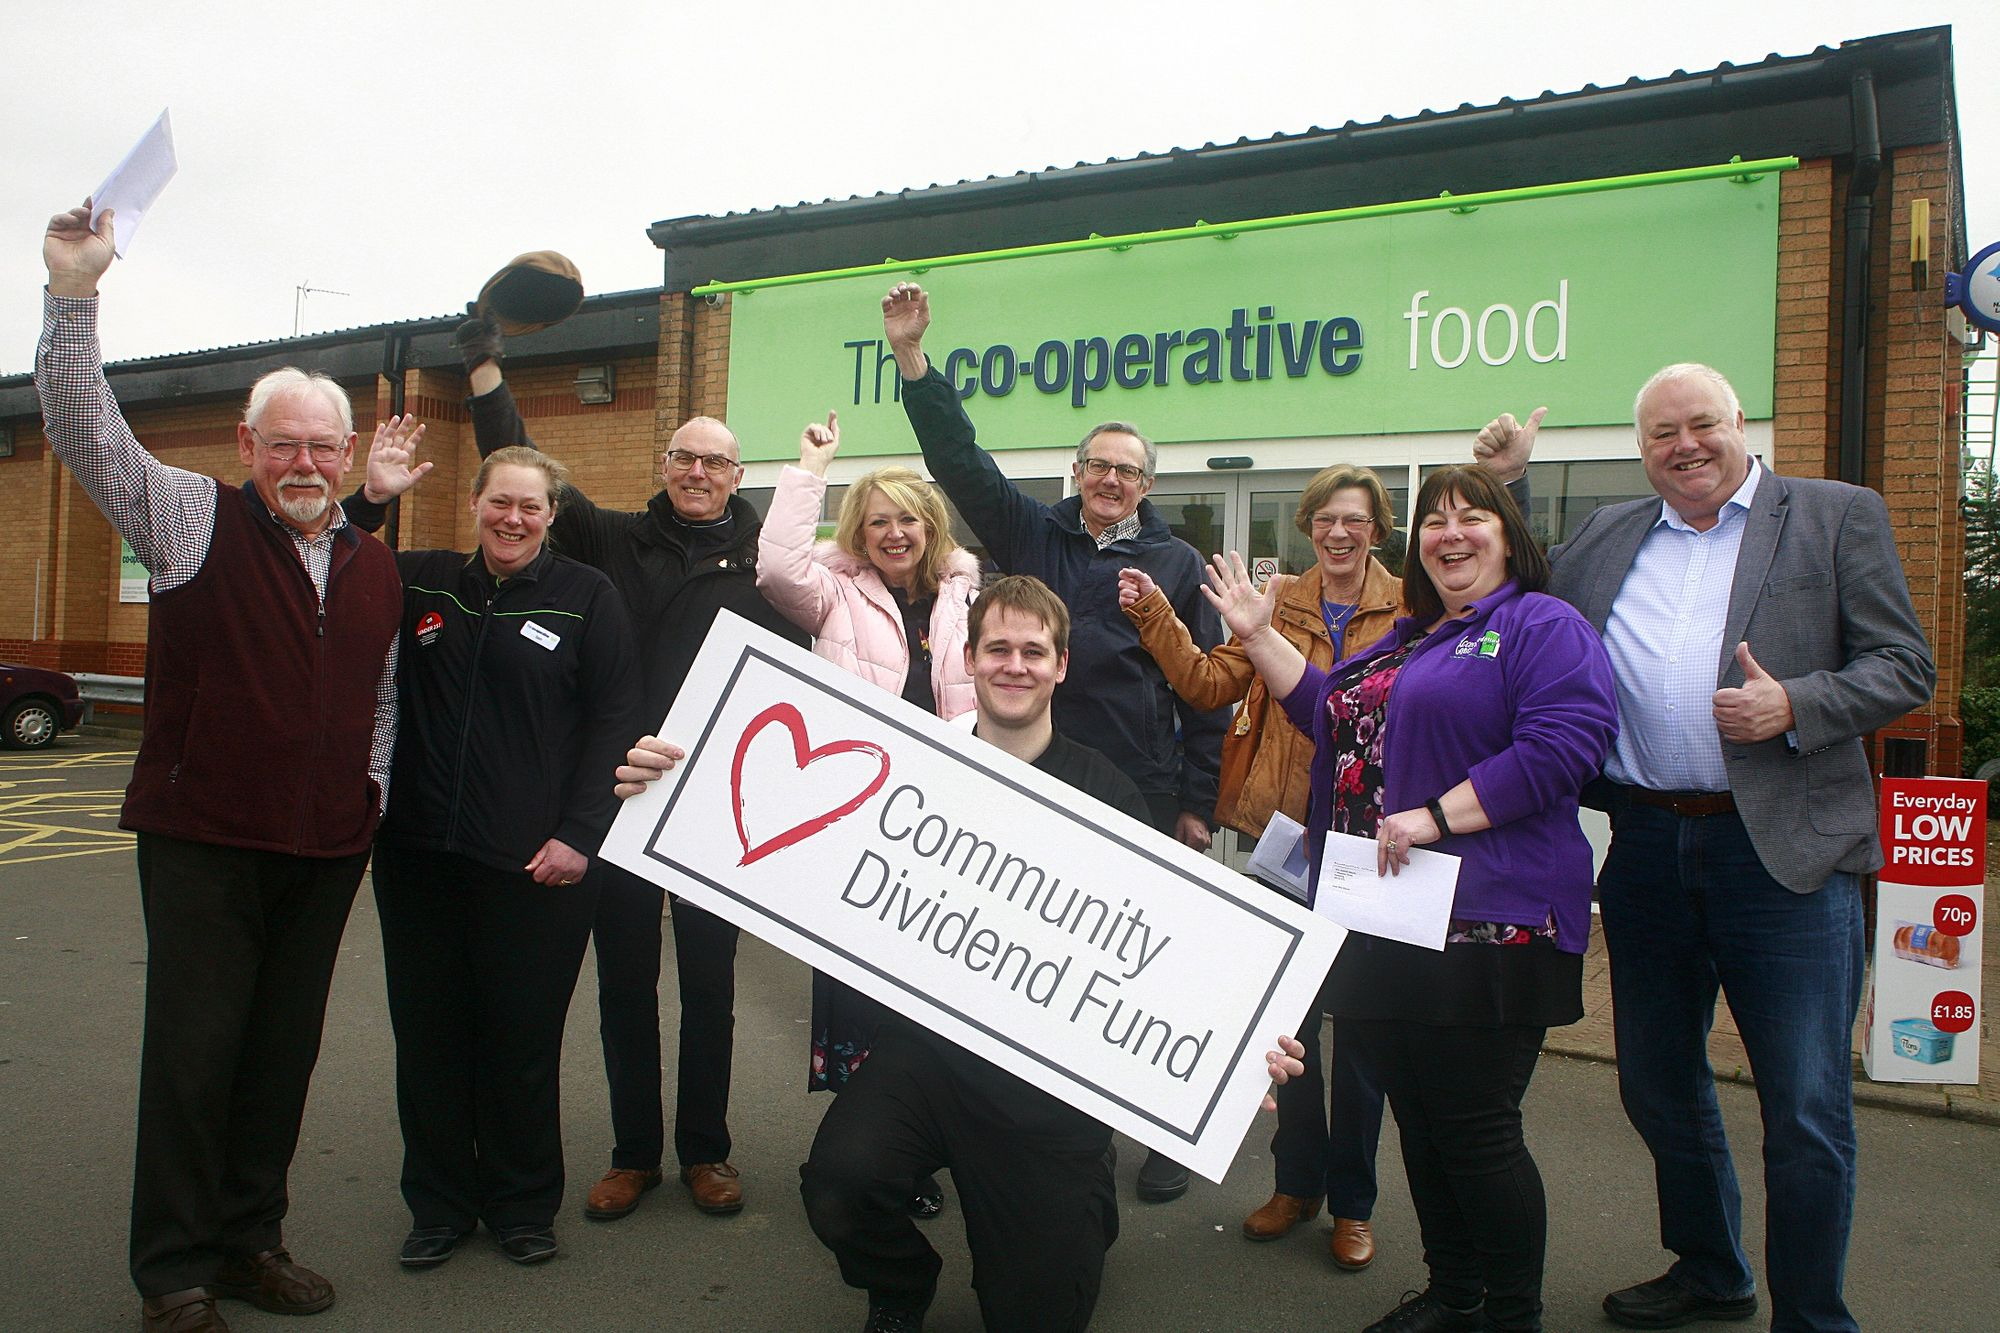 114 good causes share £177k thanks to our community fund